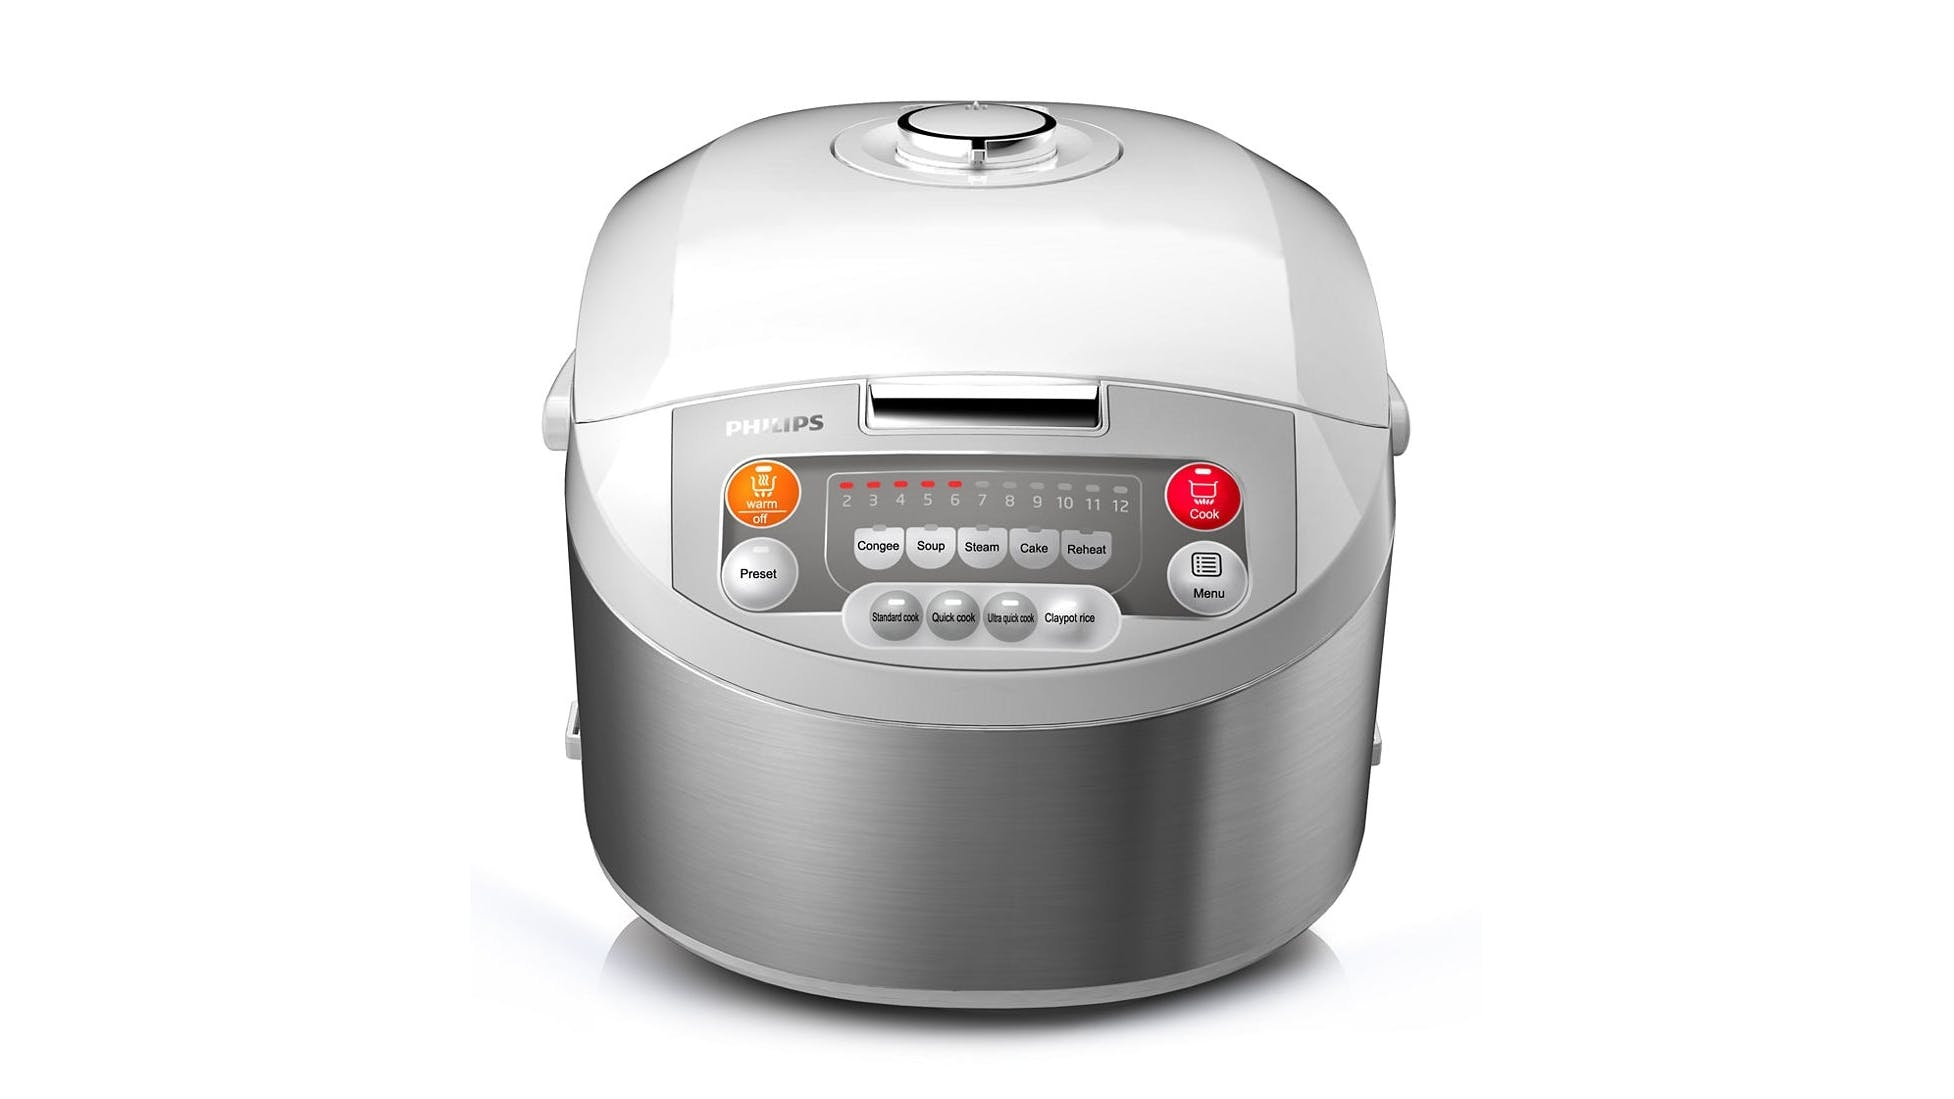 Philips Viva Collection Fuzzy Logic 1 8L Rice Cooker